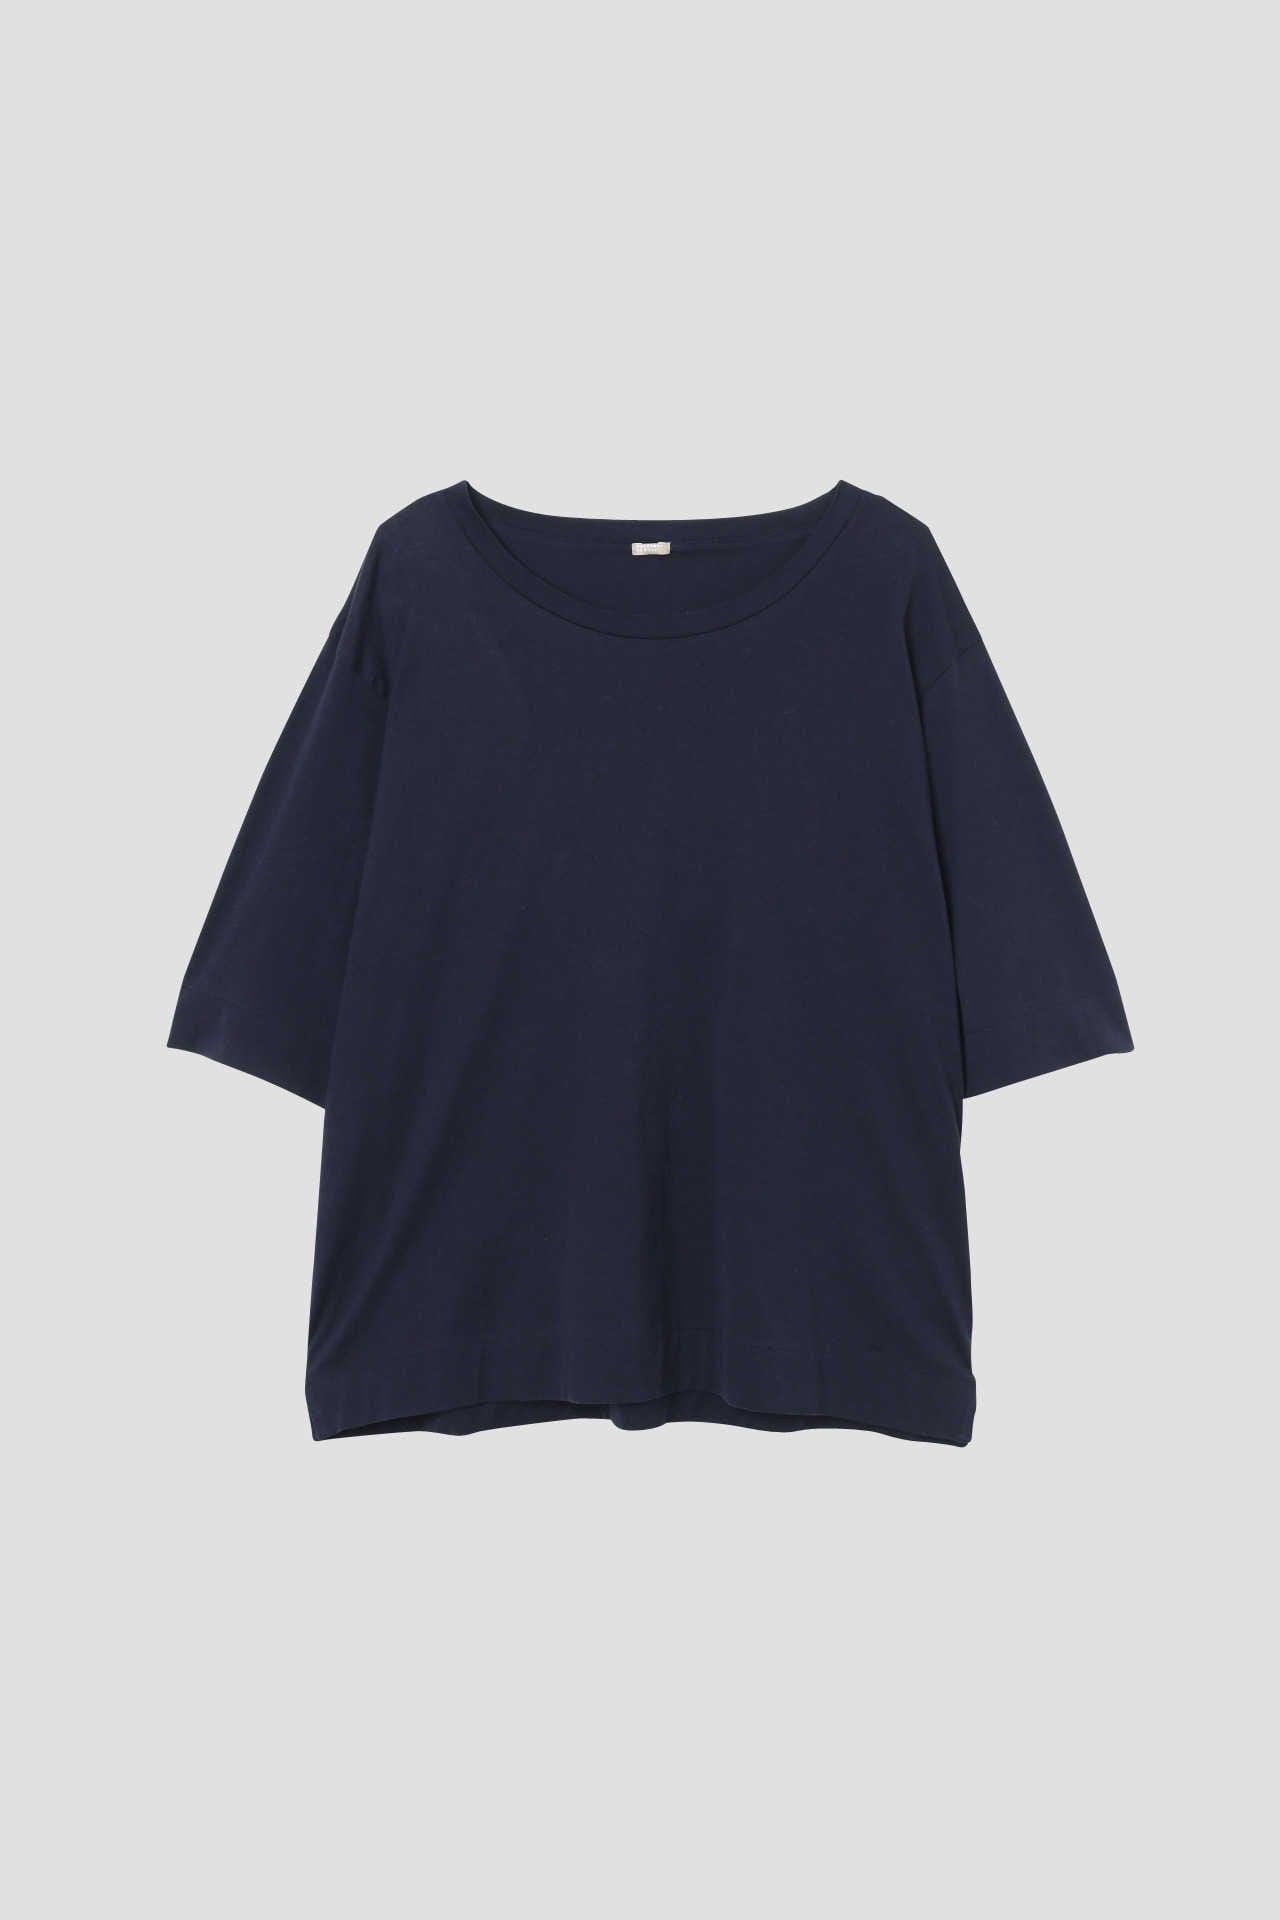 RELAXED COTTON JERSEY1